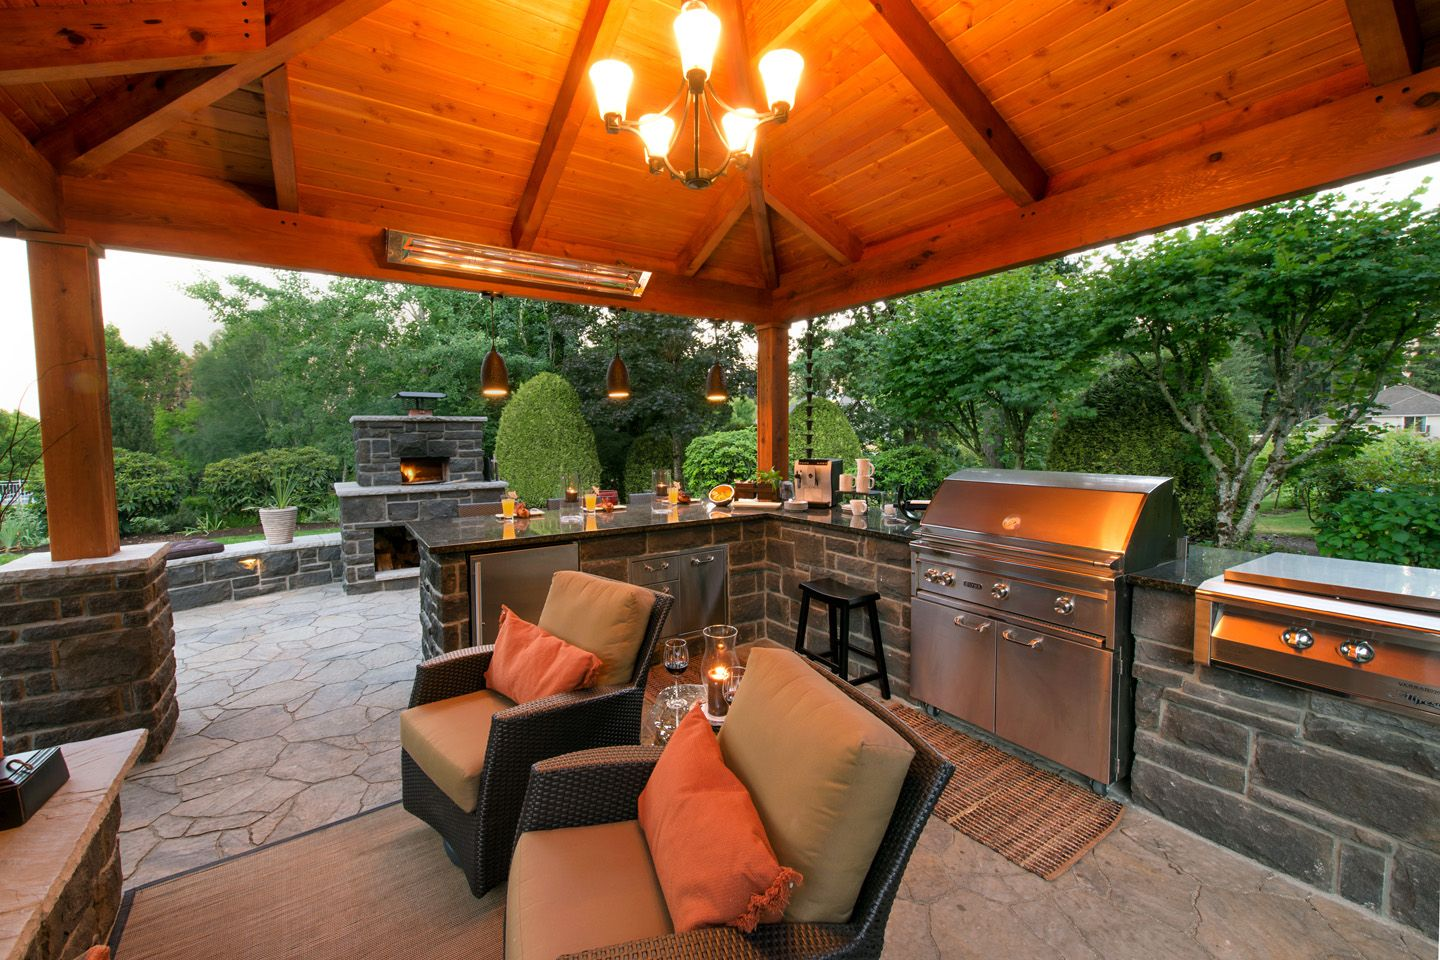 25 before after outdoor living spaces outdoor space makeover outdoor kitchen outdoor living on outdoor kitchen and living space id=84264